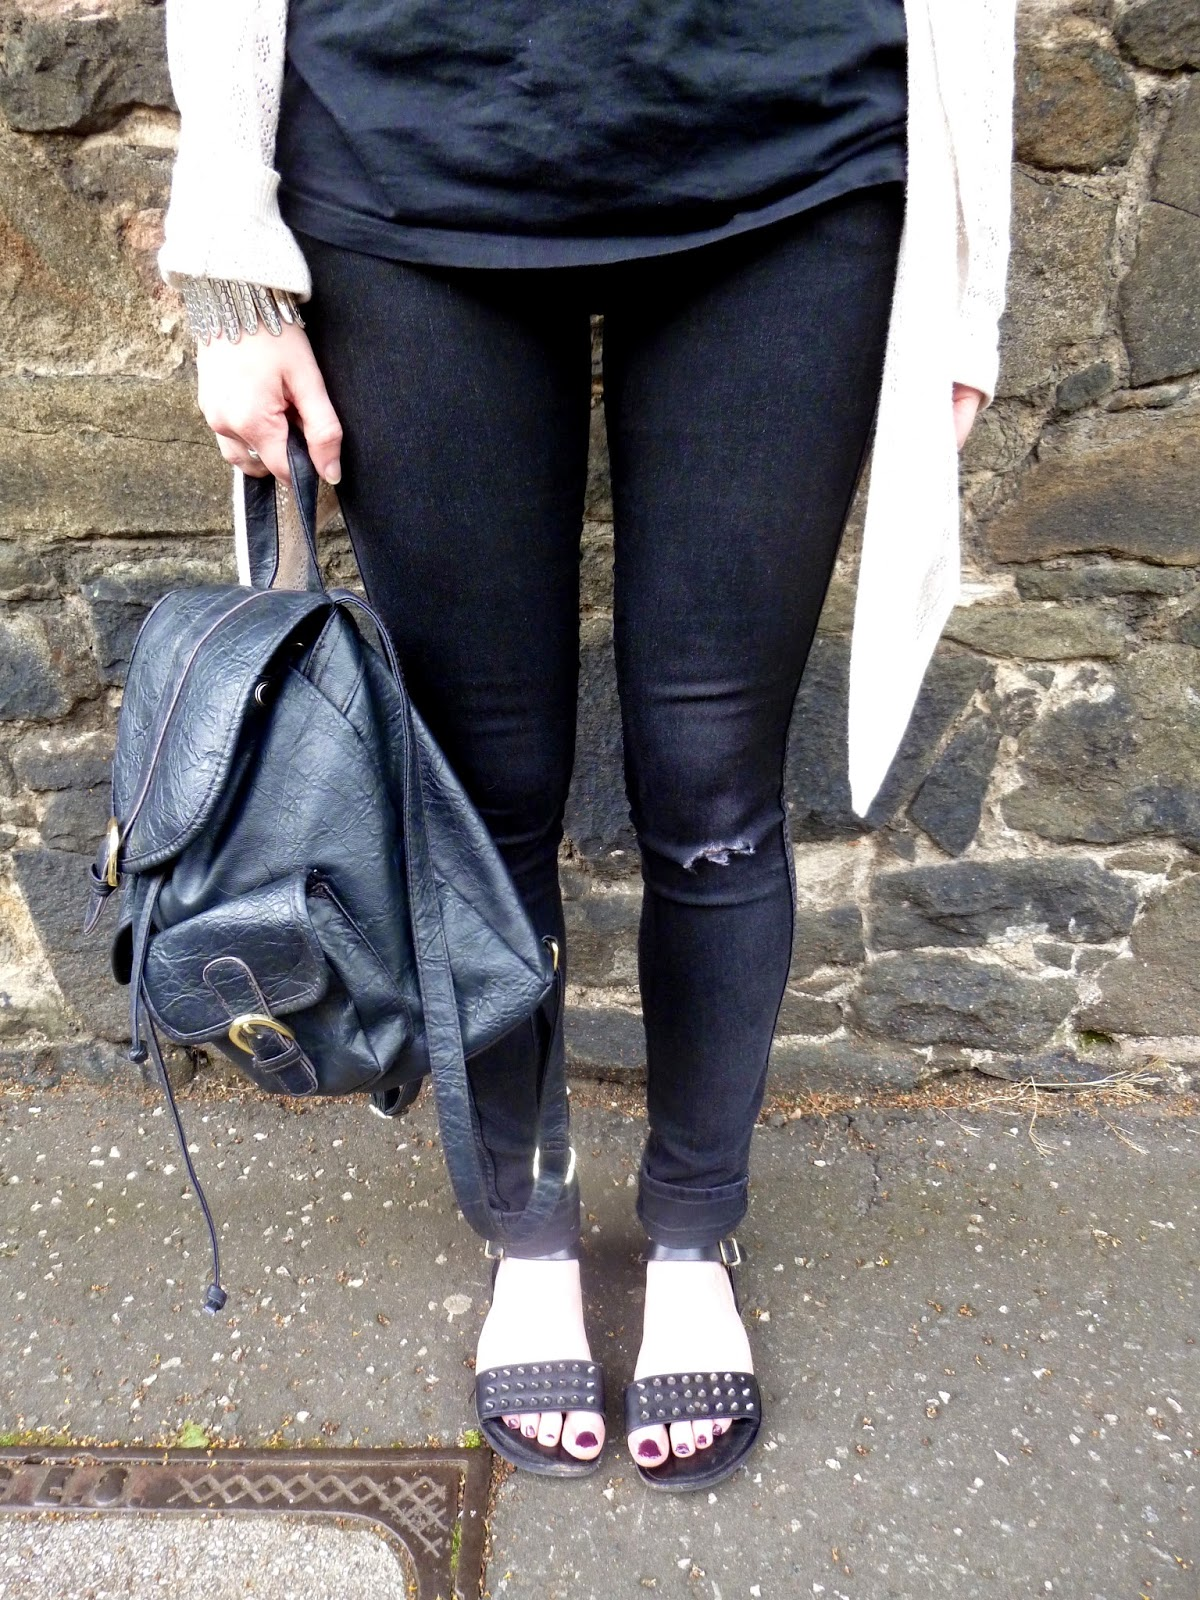 Details of todays outit with ripped jeans, studded sandals and lack leather rucksack